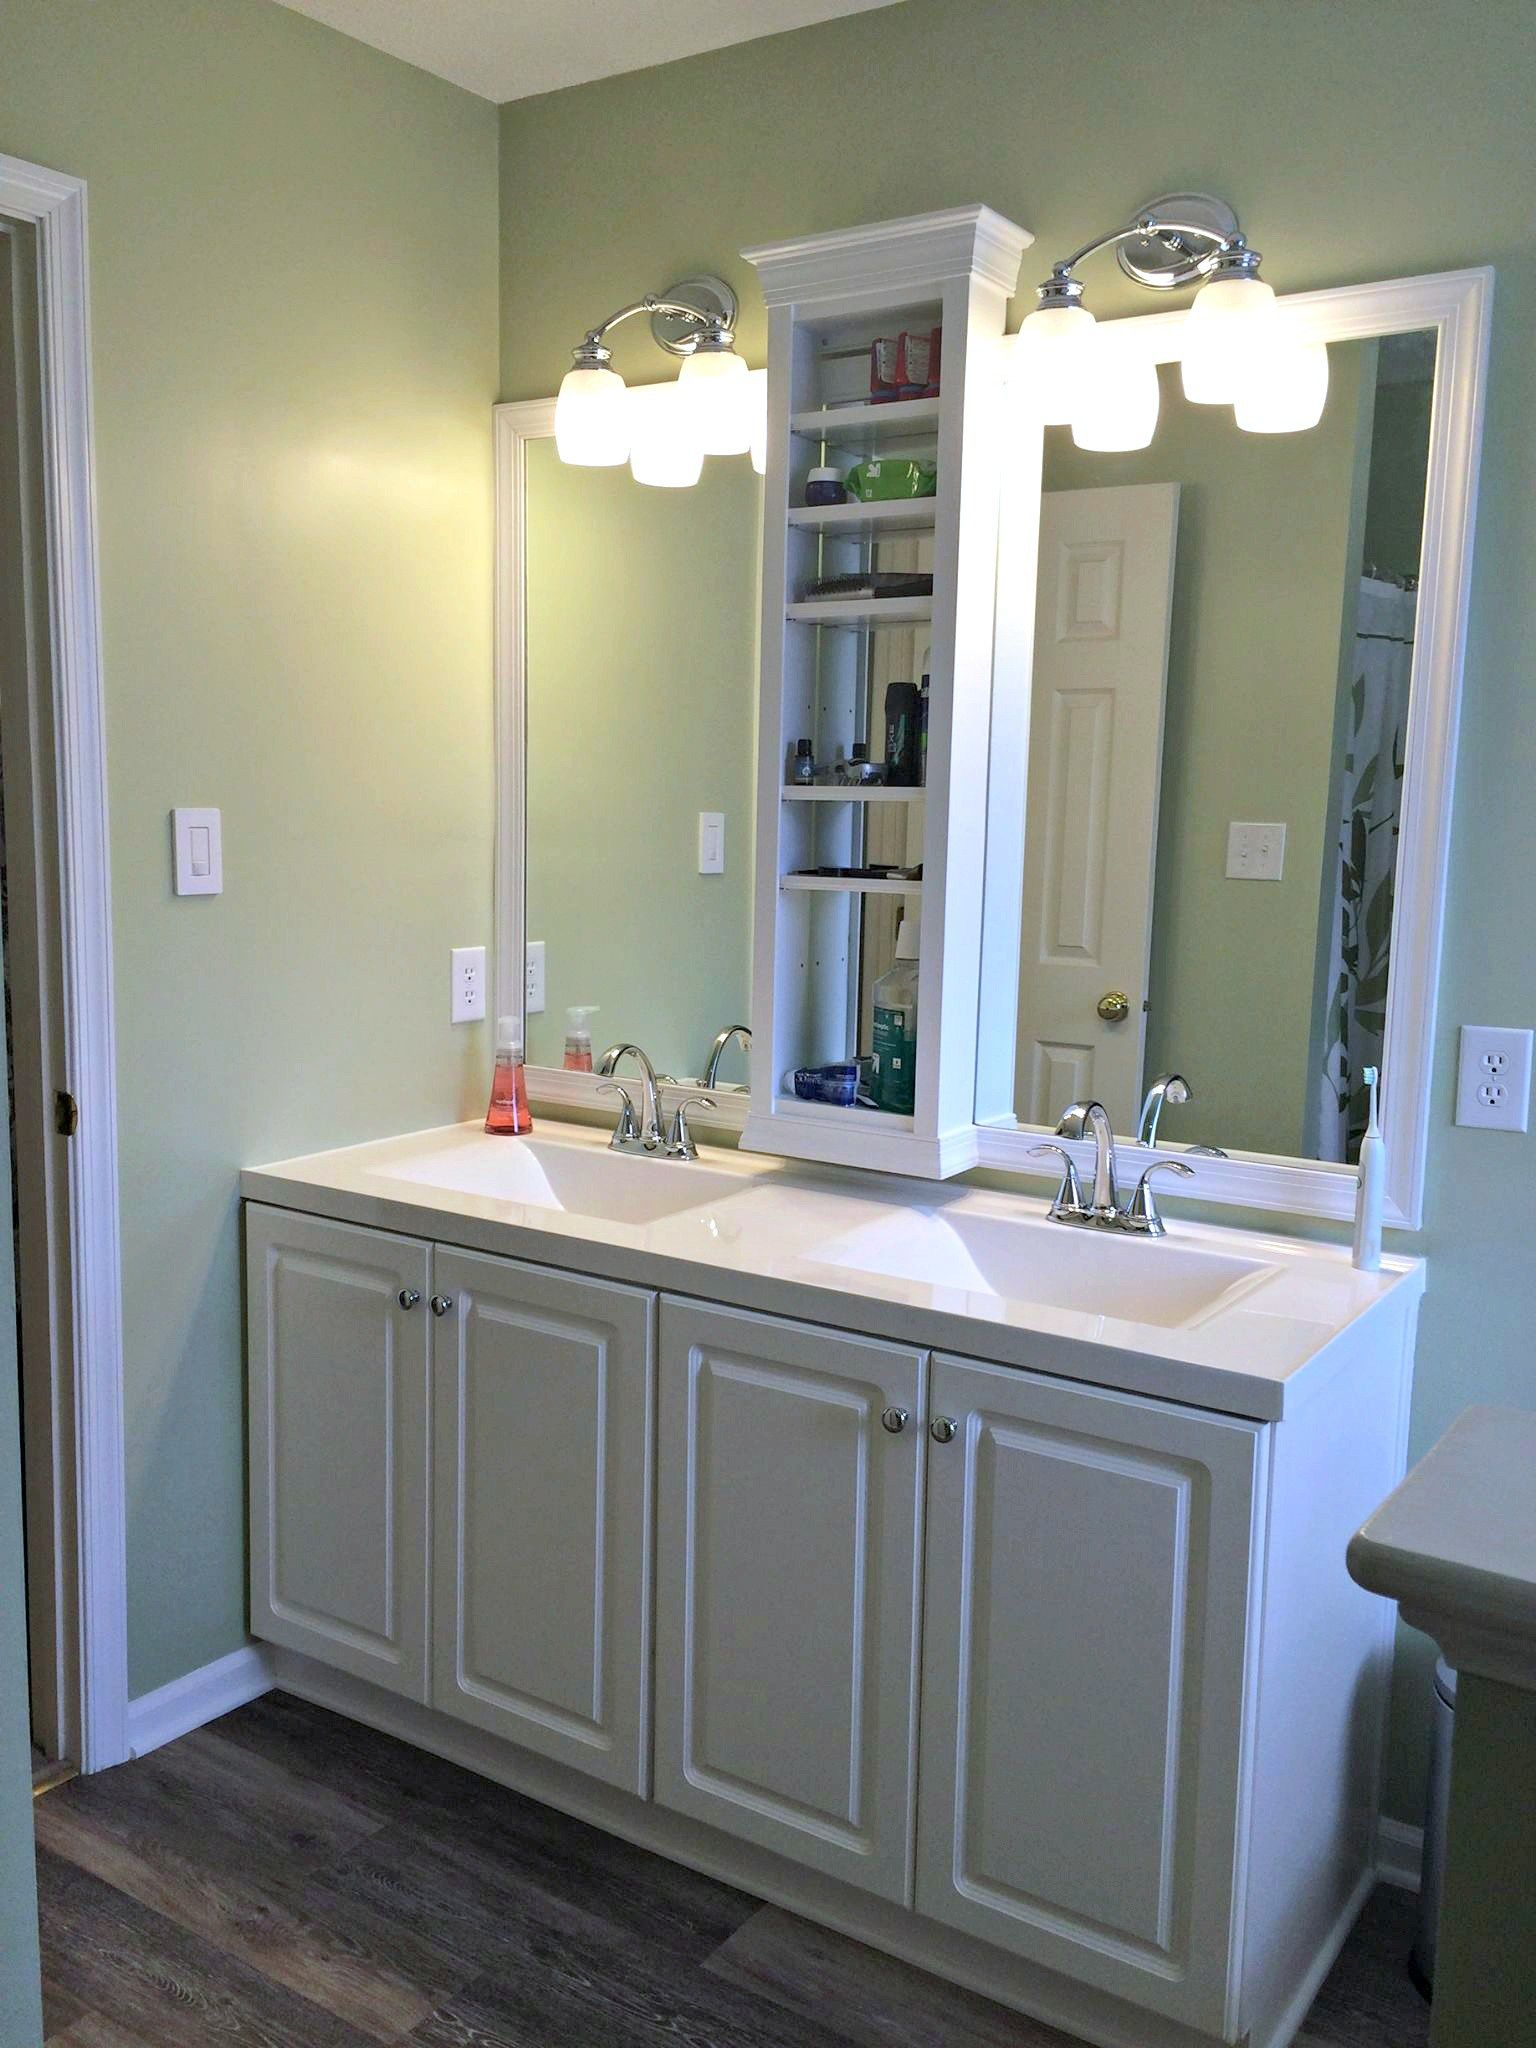 Master Bathroom Vanity Sink Mirror Update Built In Shelves Framed Mirror With Molding Trim